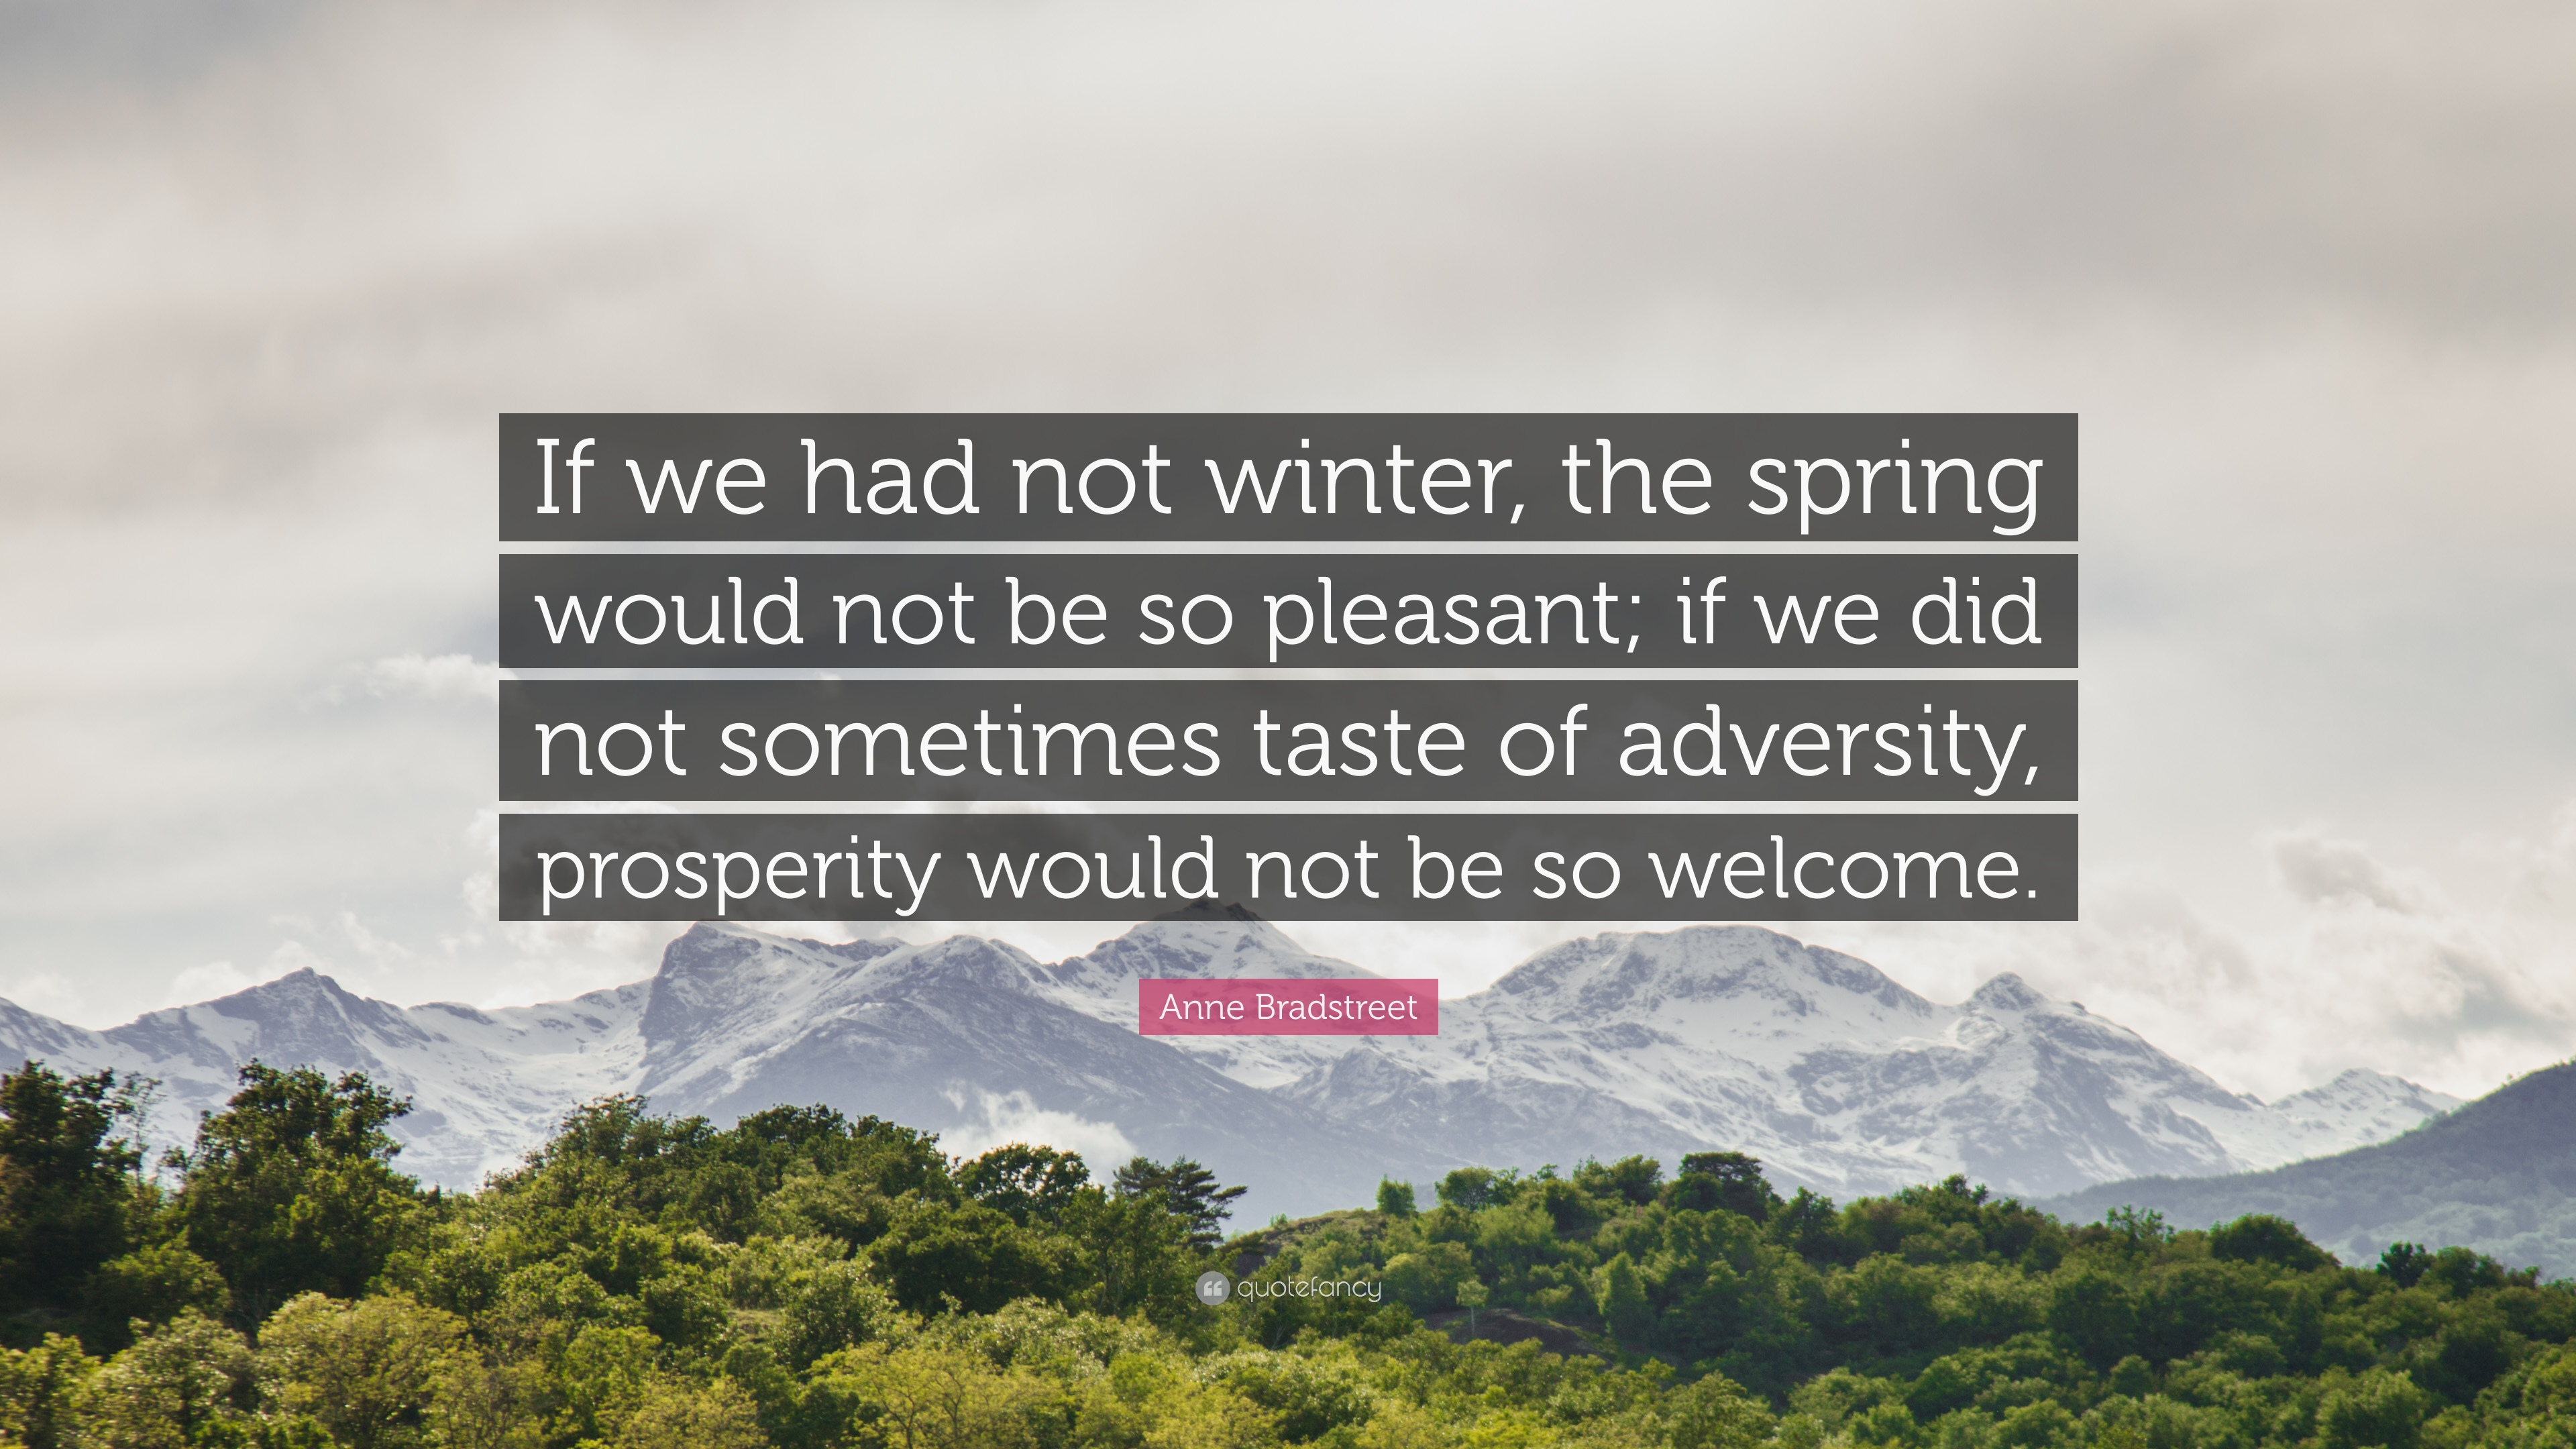 Anne Bradstreet Quote: U201cIf We Had Not Winter, The Spring Would Not Be